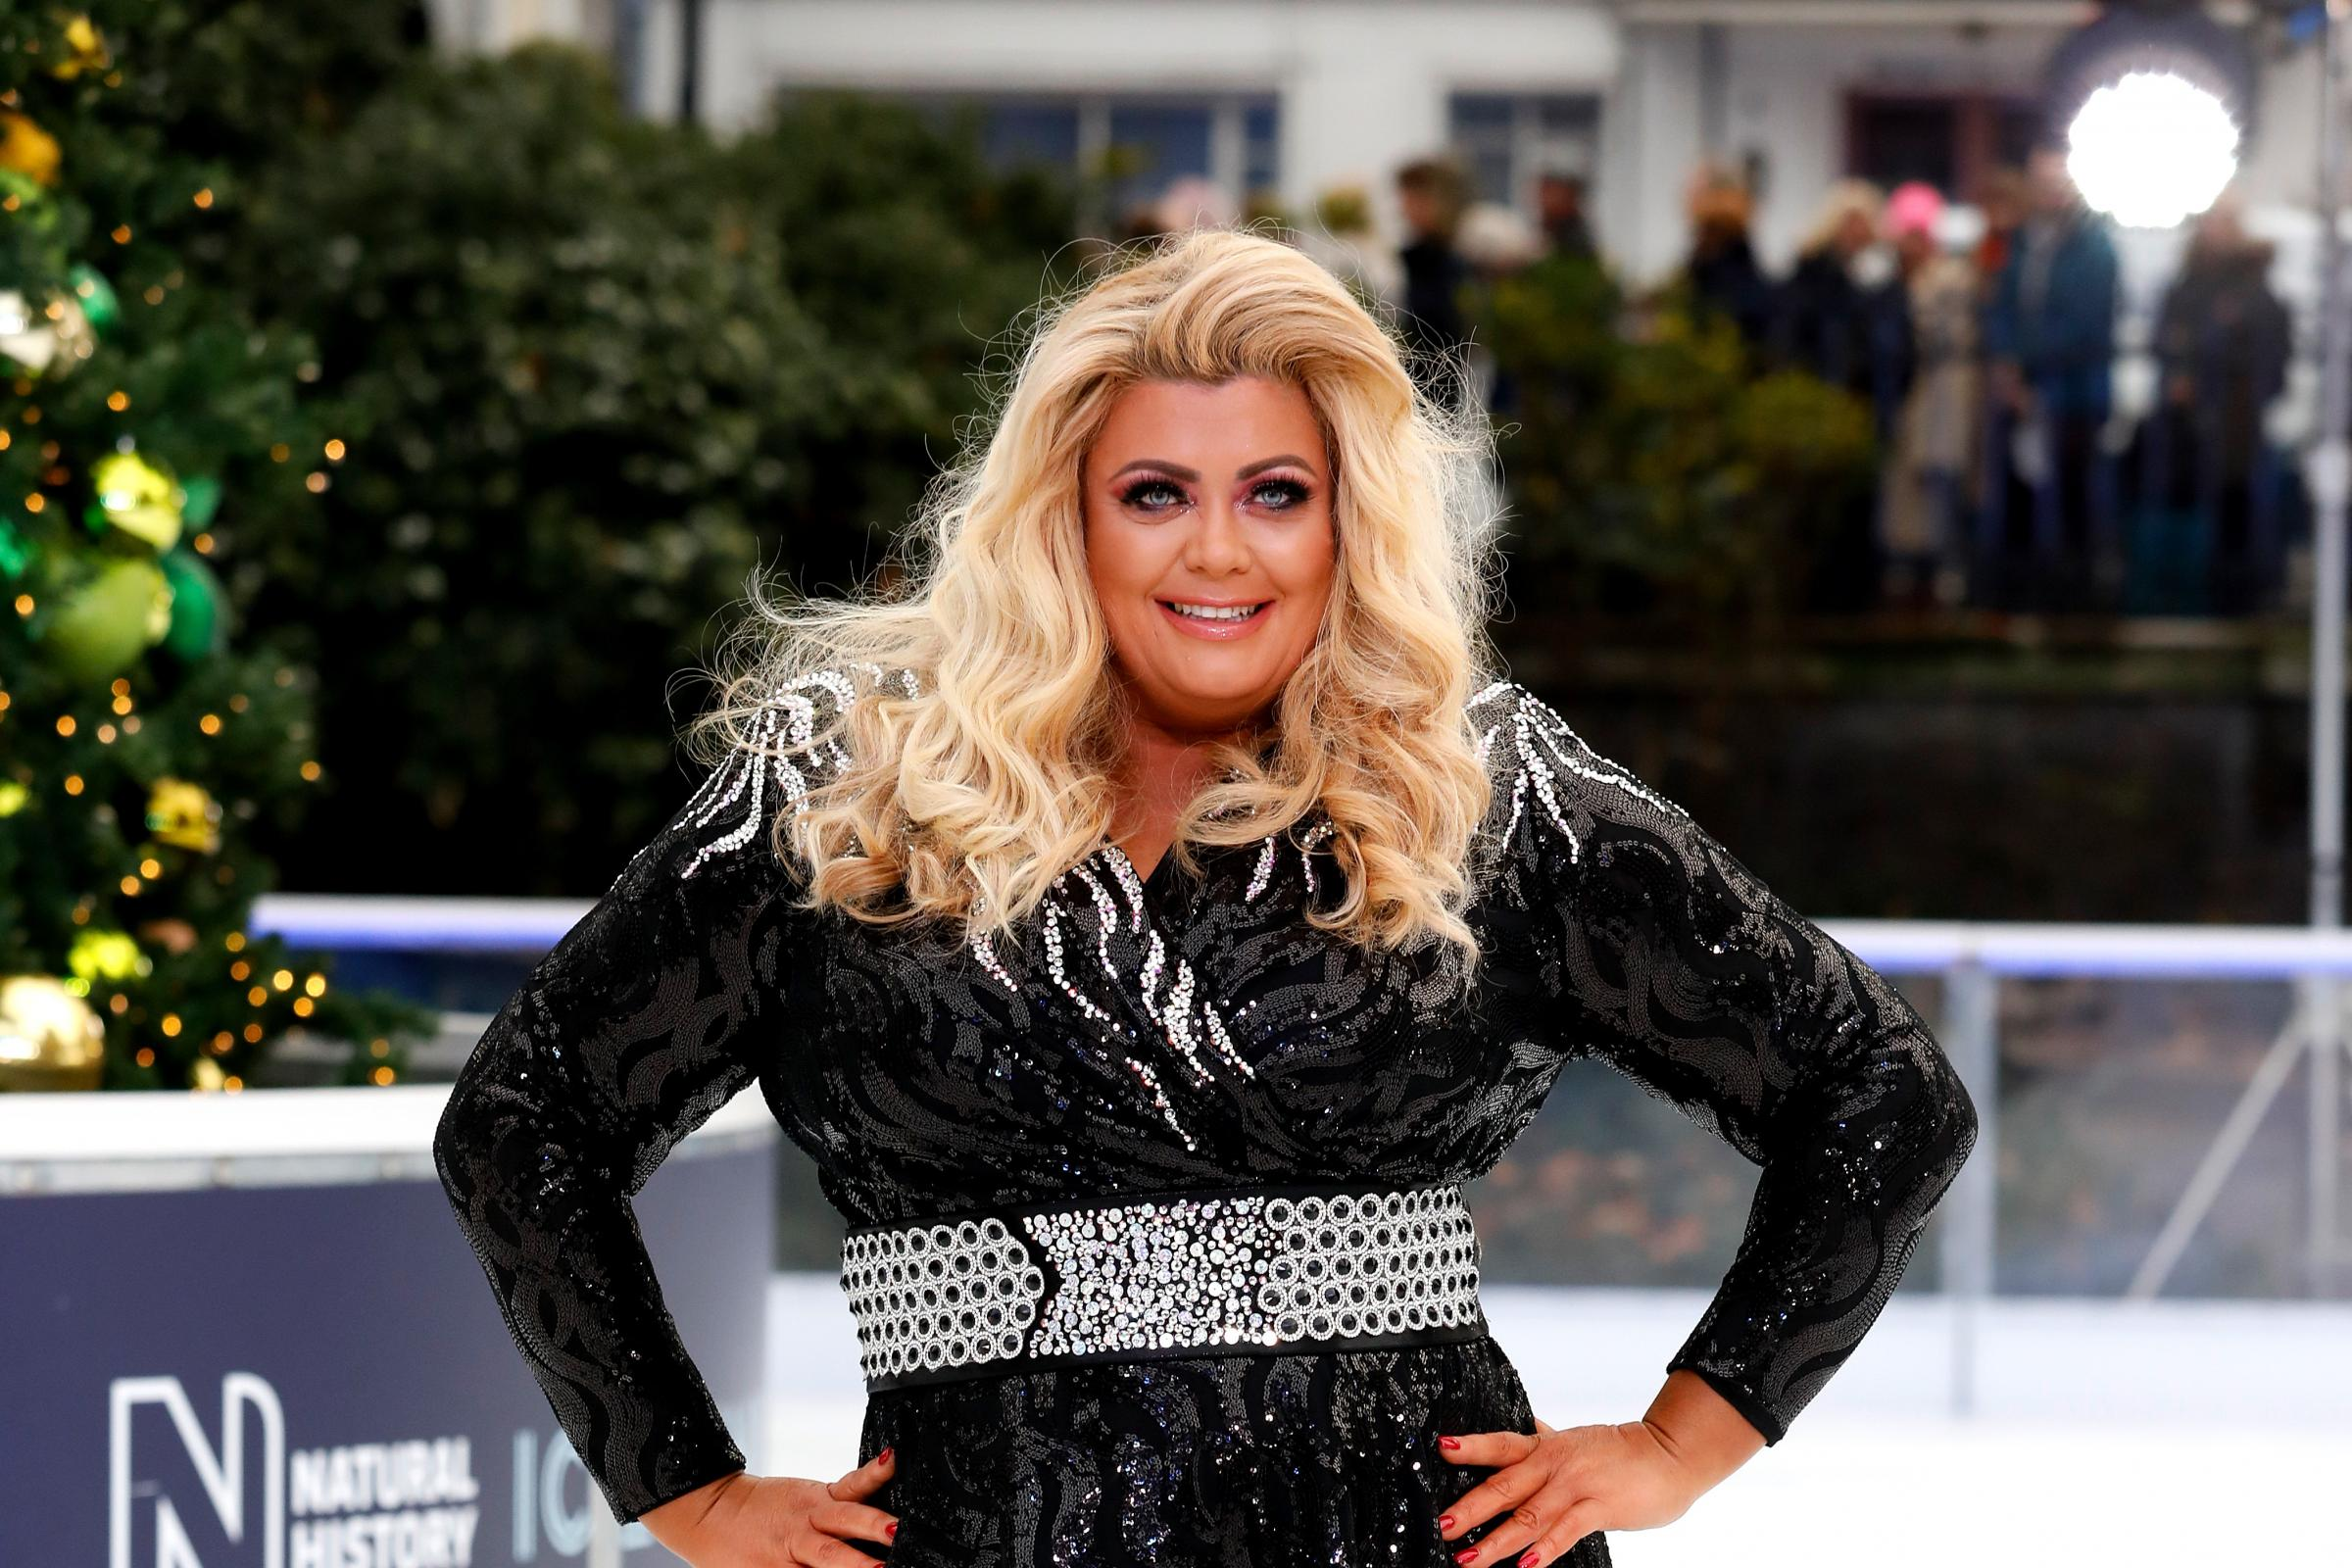 Gemma Collins on Dancing on Ice 2018